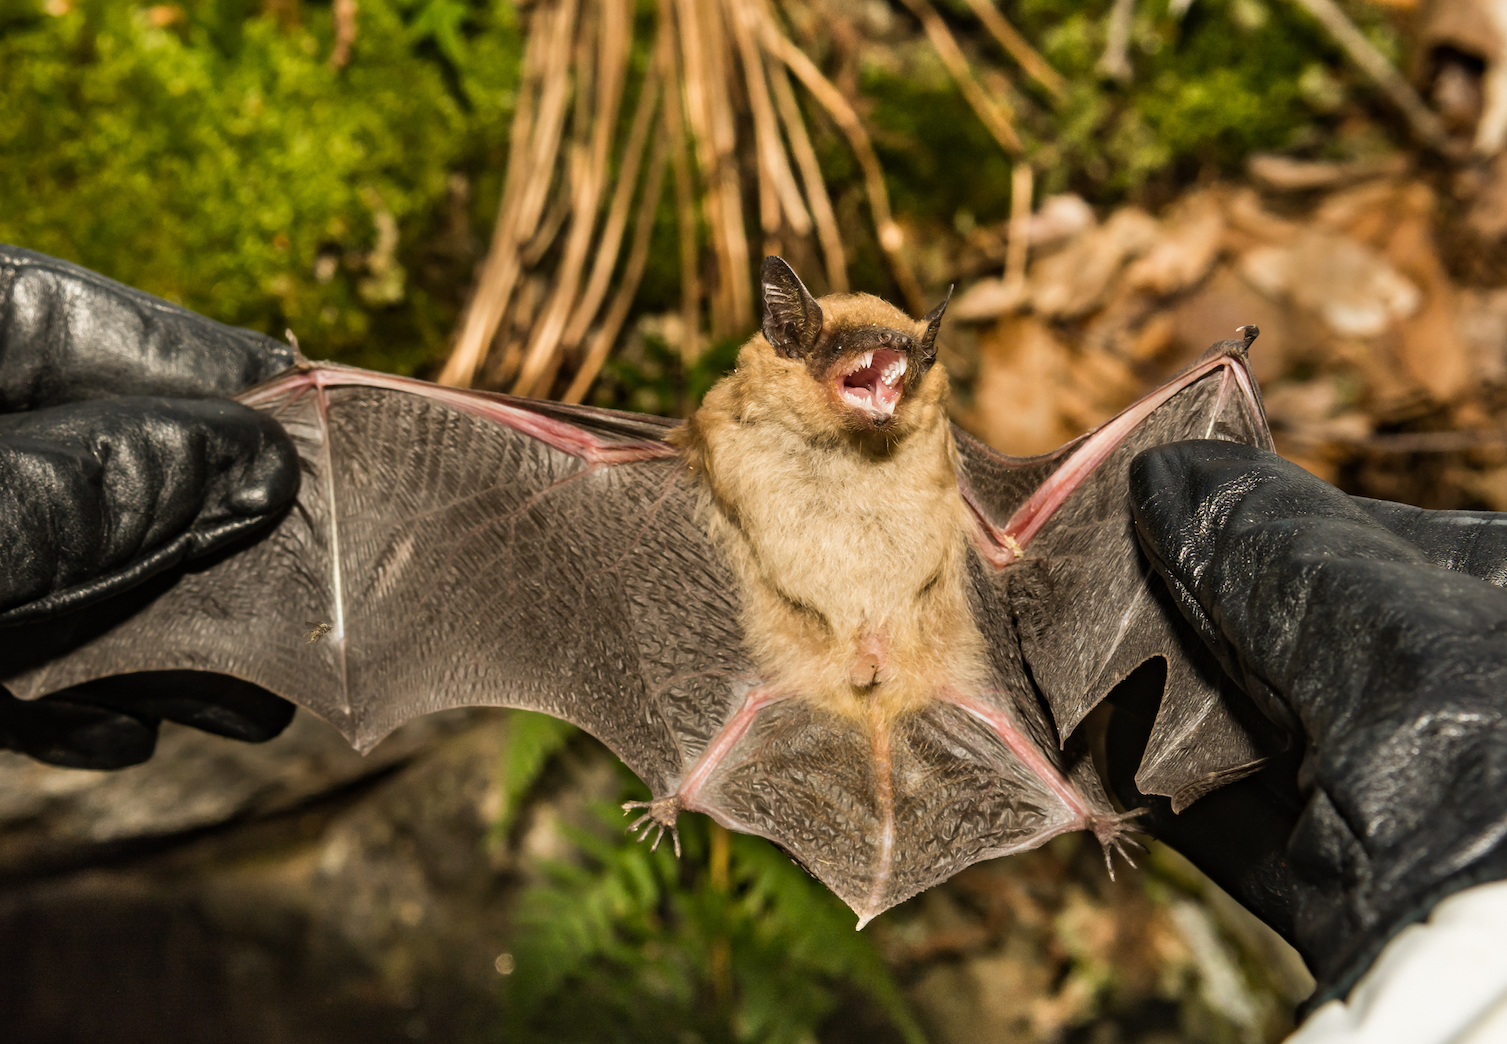 A stud found that white-nose syndrome affects seven species of bats and has caused regional population collapses.